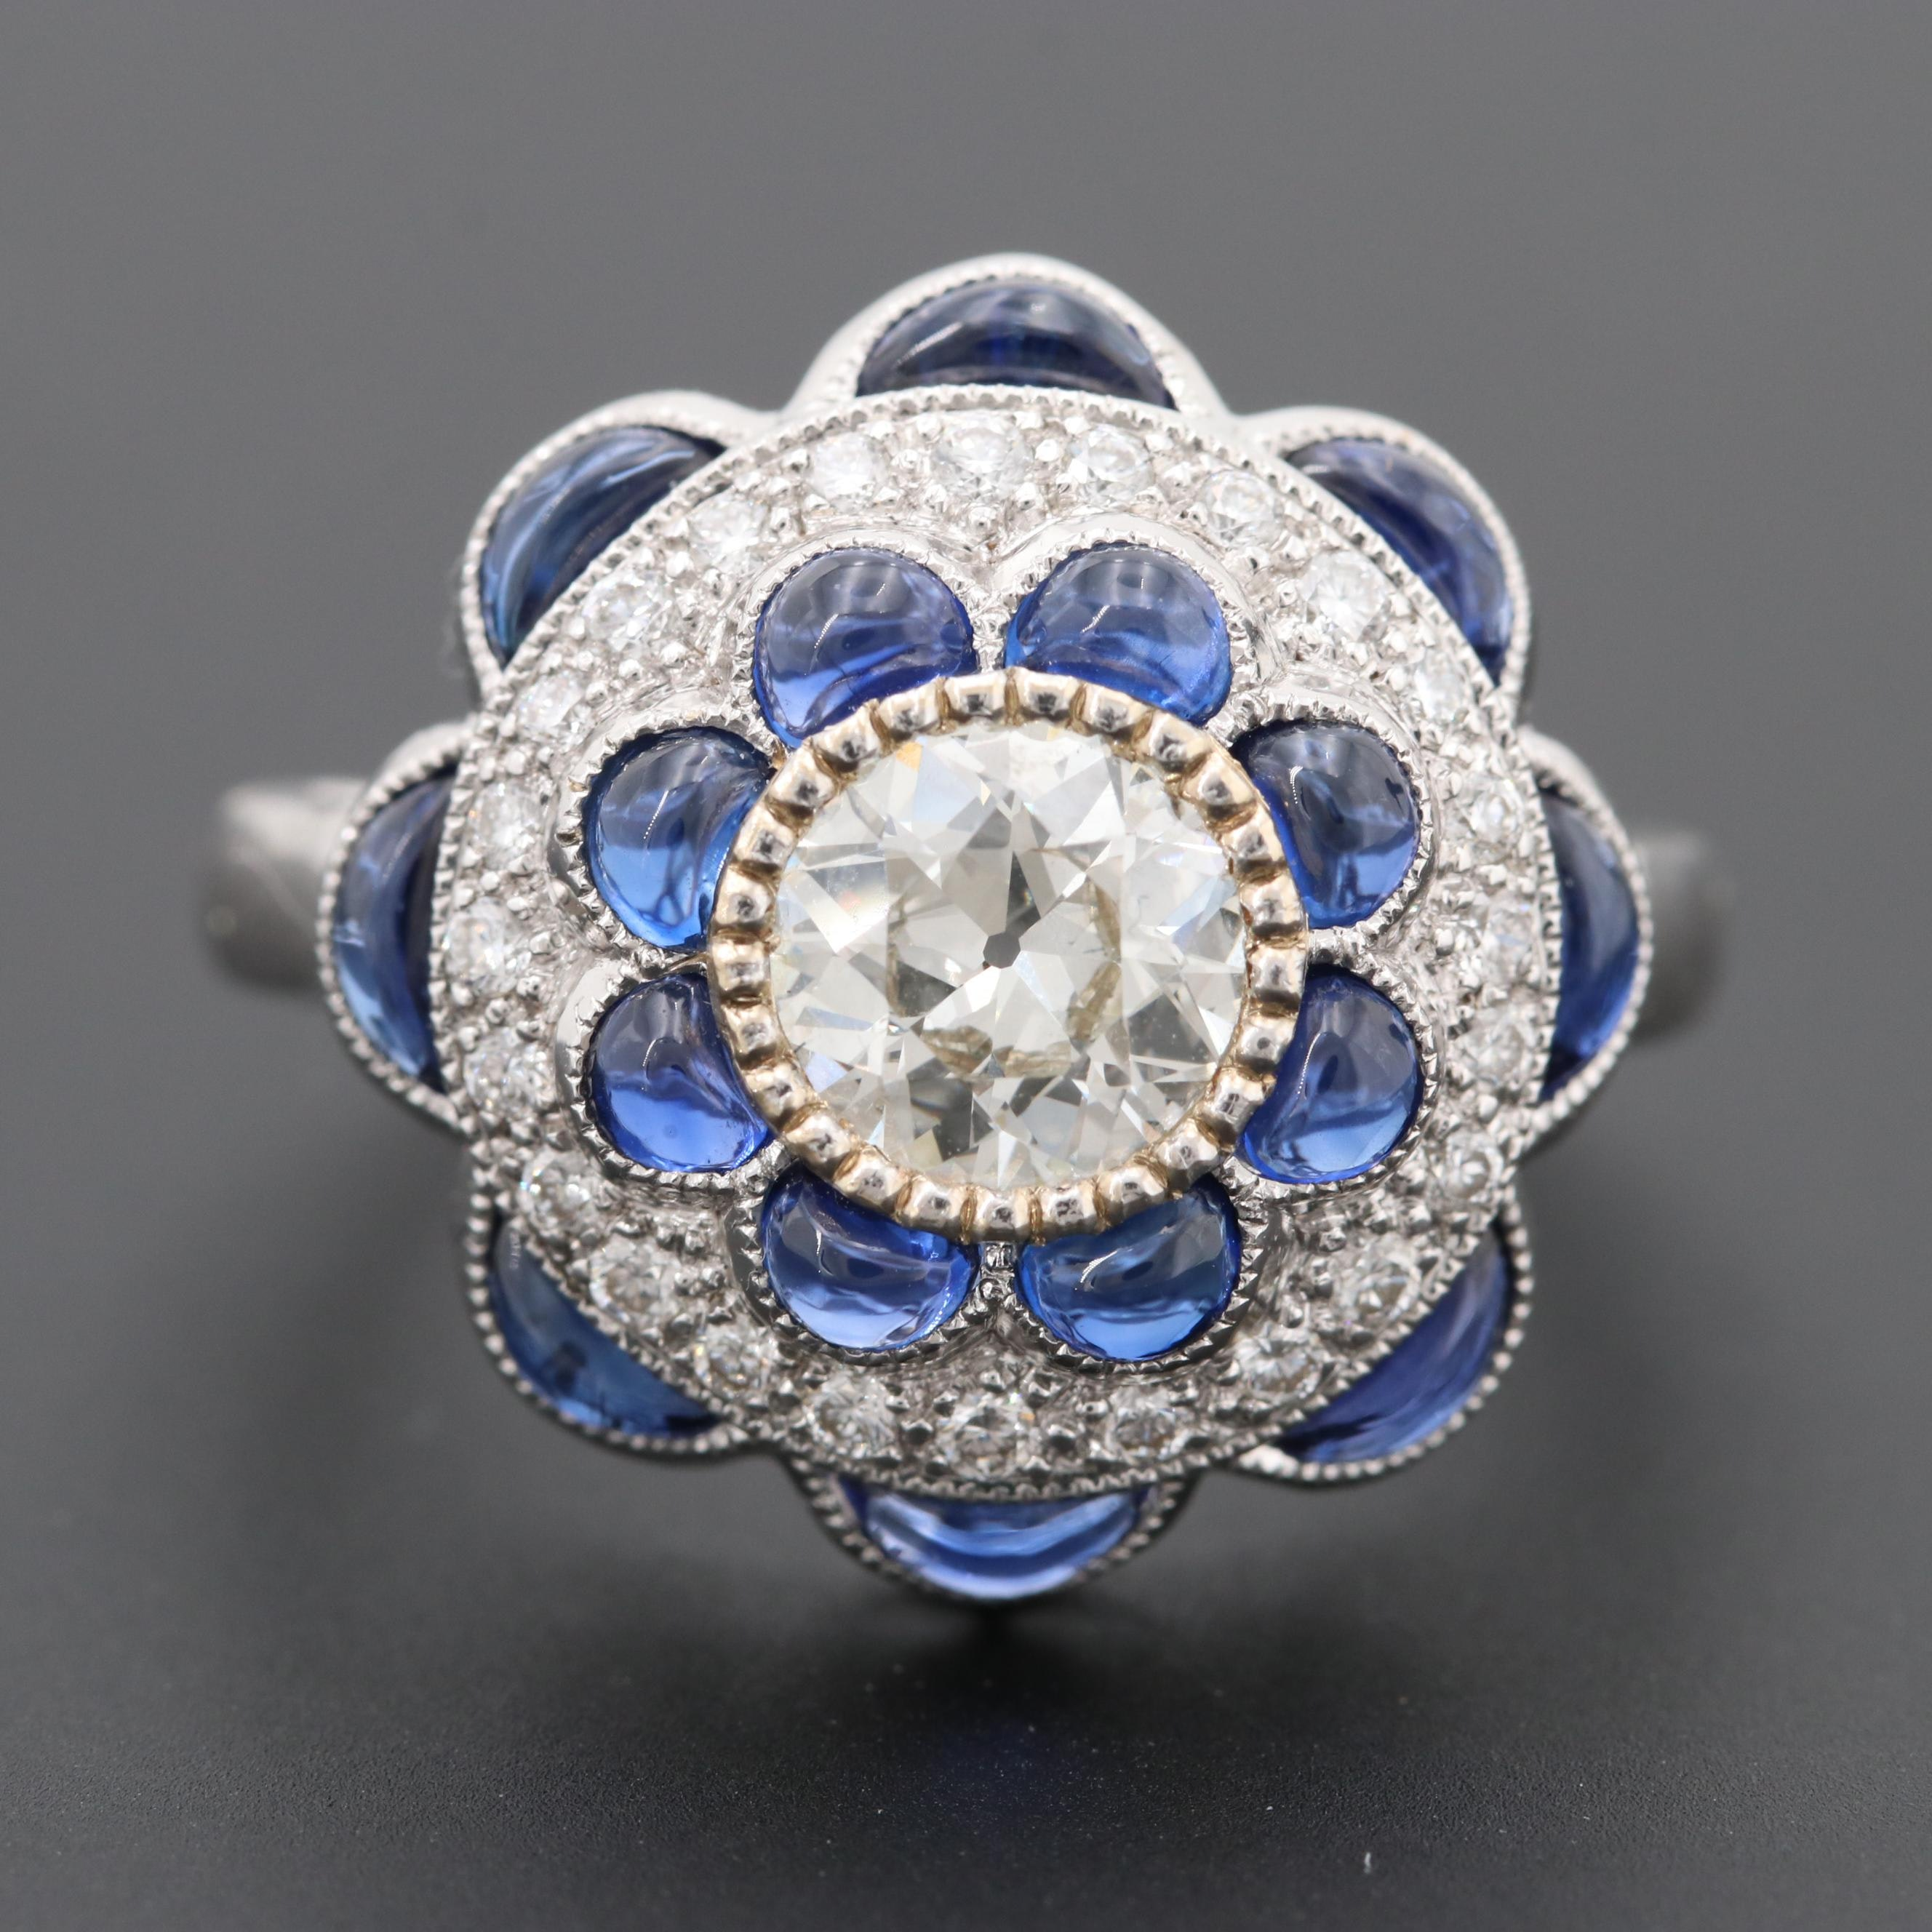 18K White Gold 1.08 CTW Diamond and Sapphire Ring